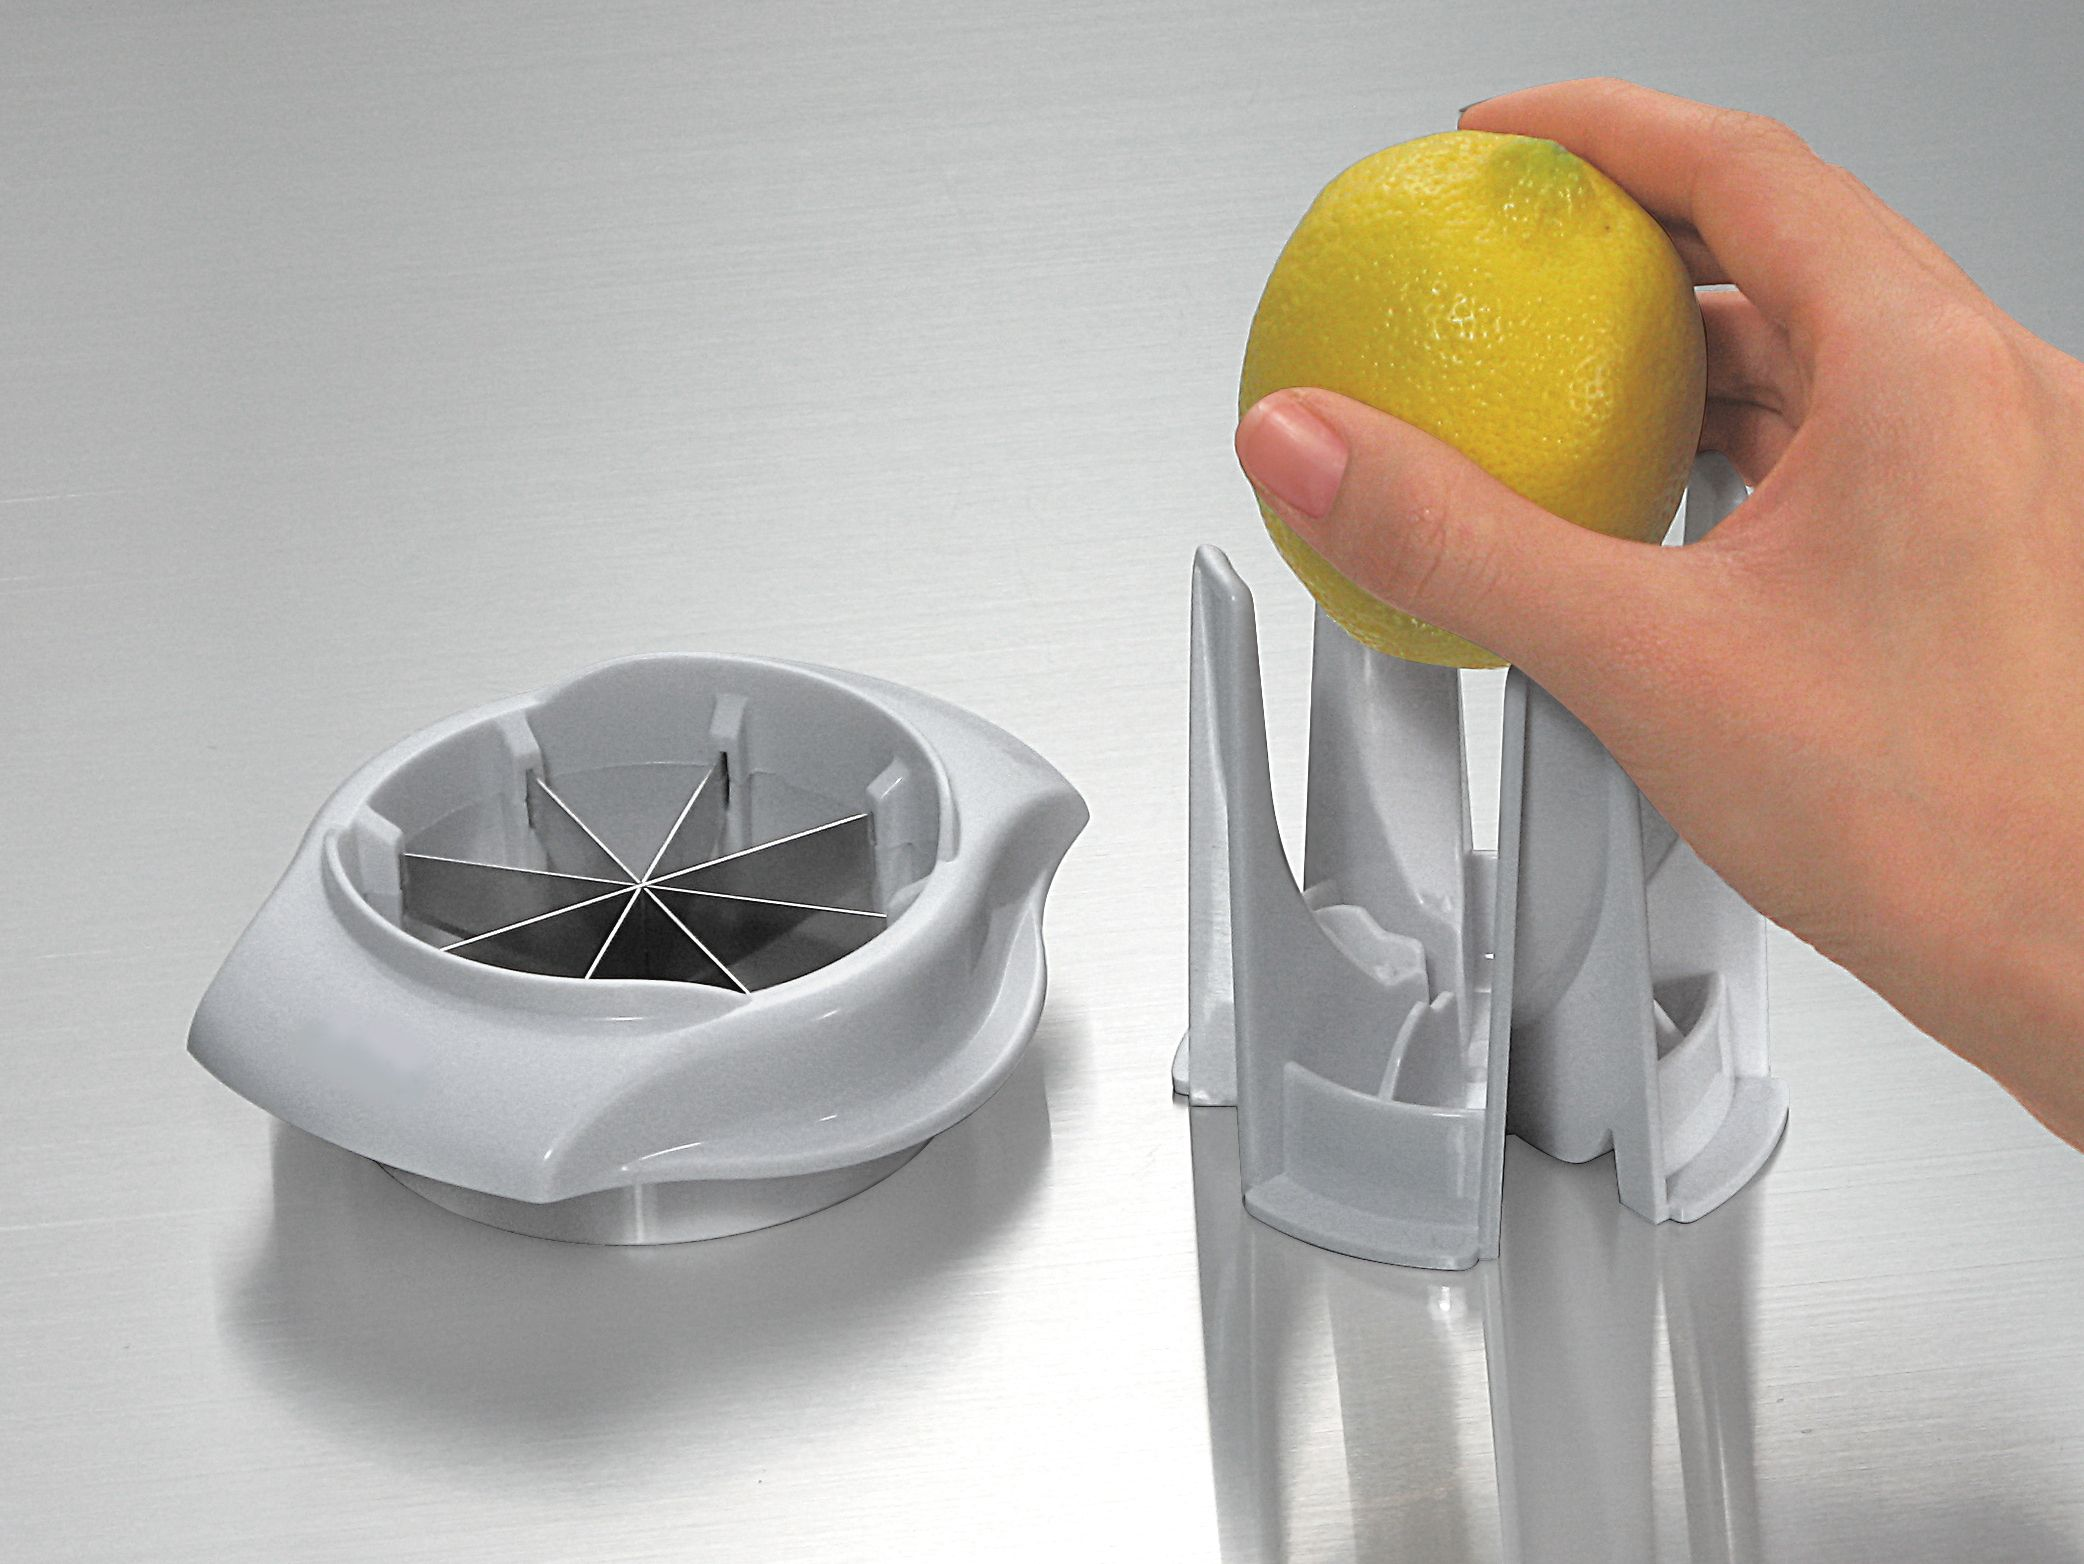 How to slice lemons and limes for drinks — pic 2